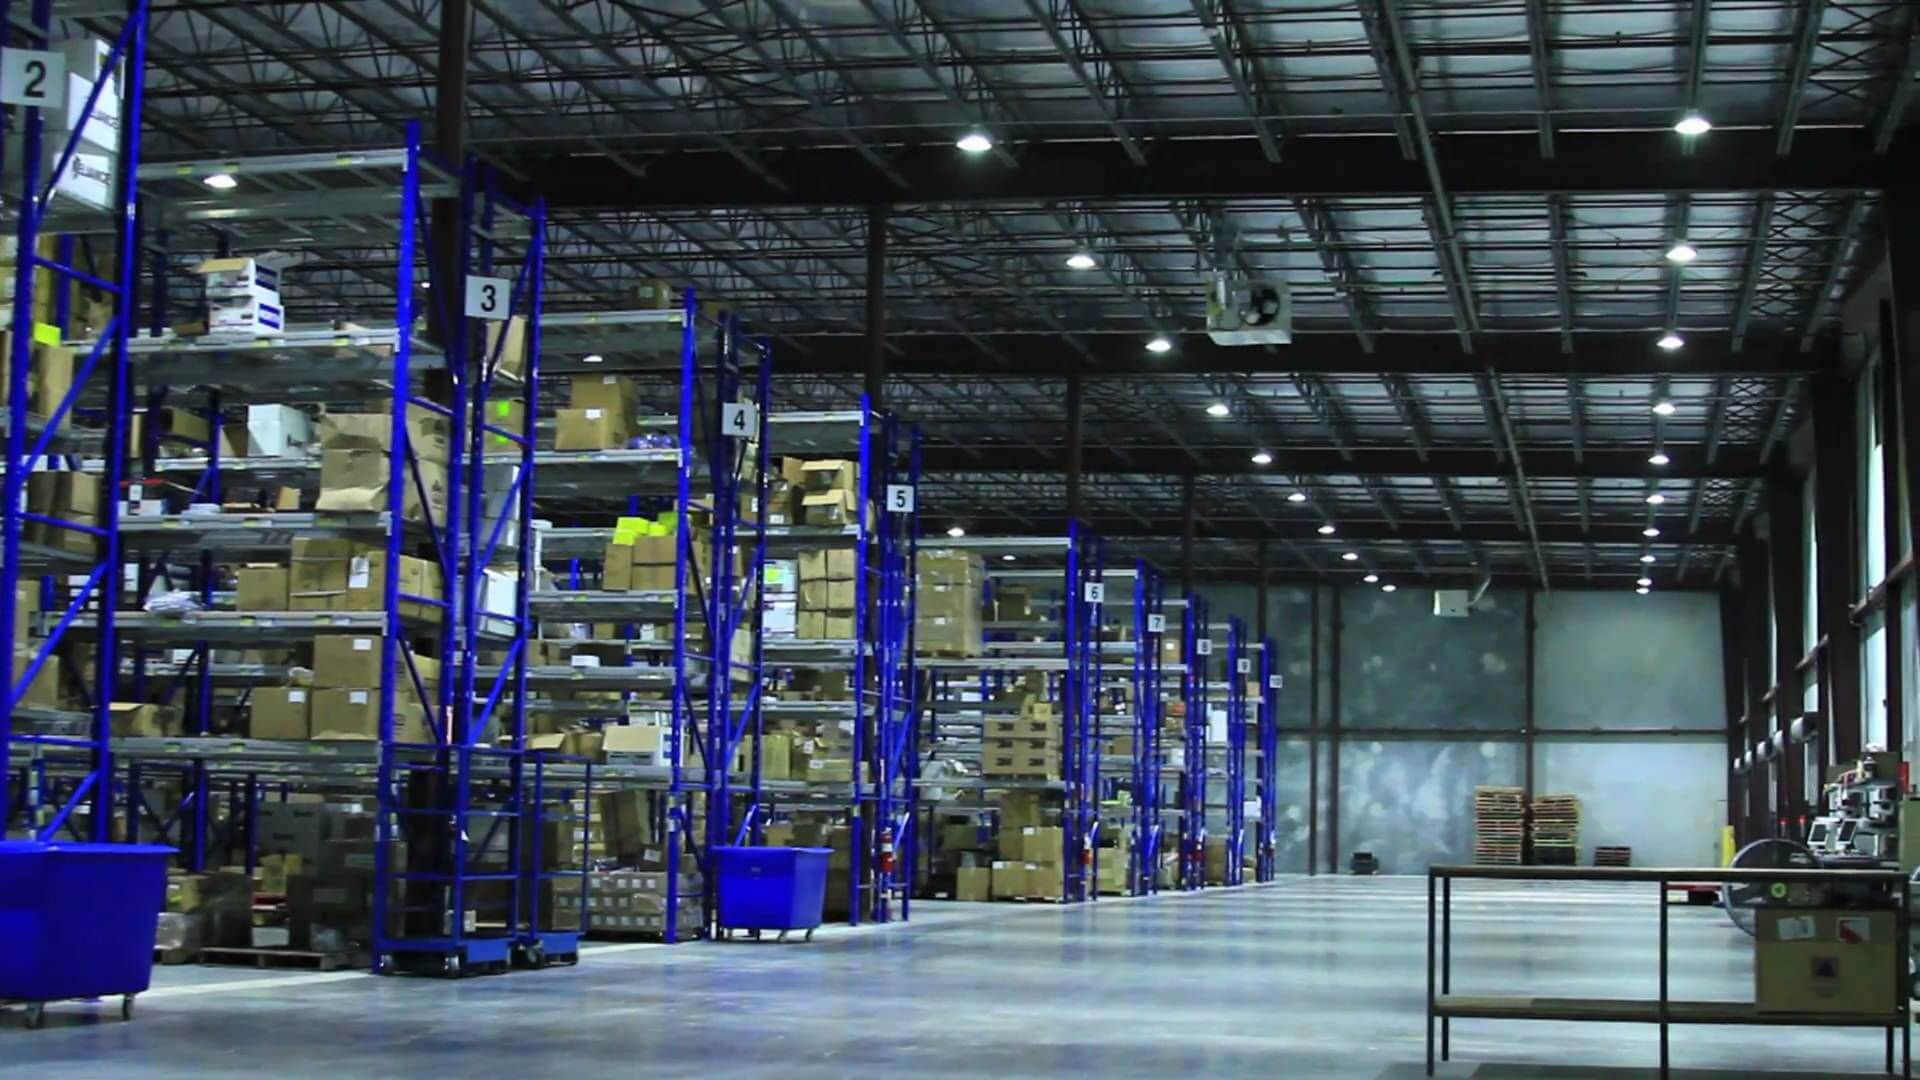 High Bay LED Light Fixtures in Warehouse